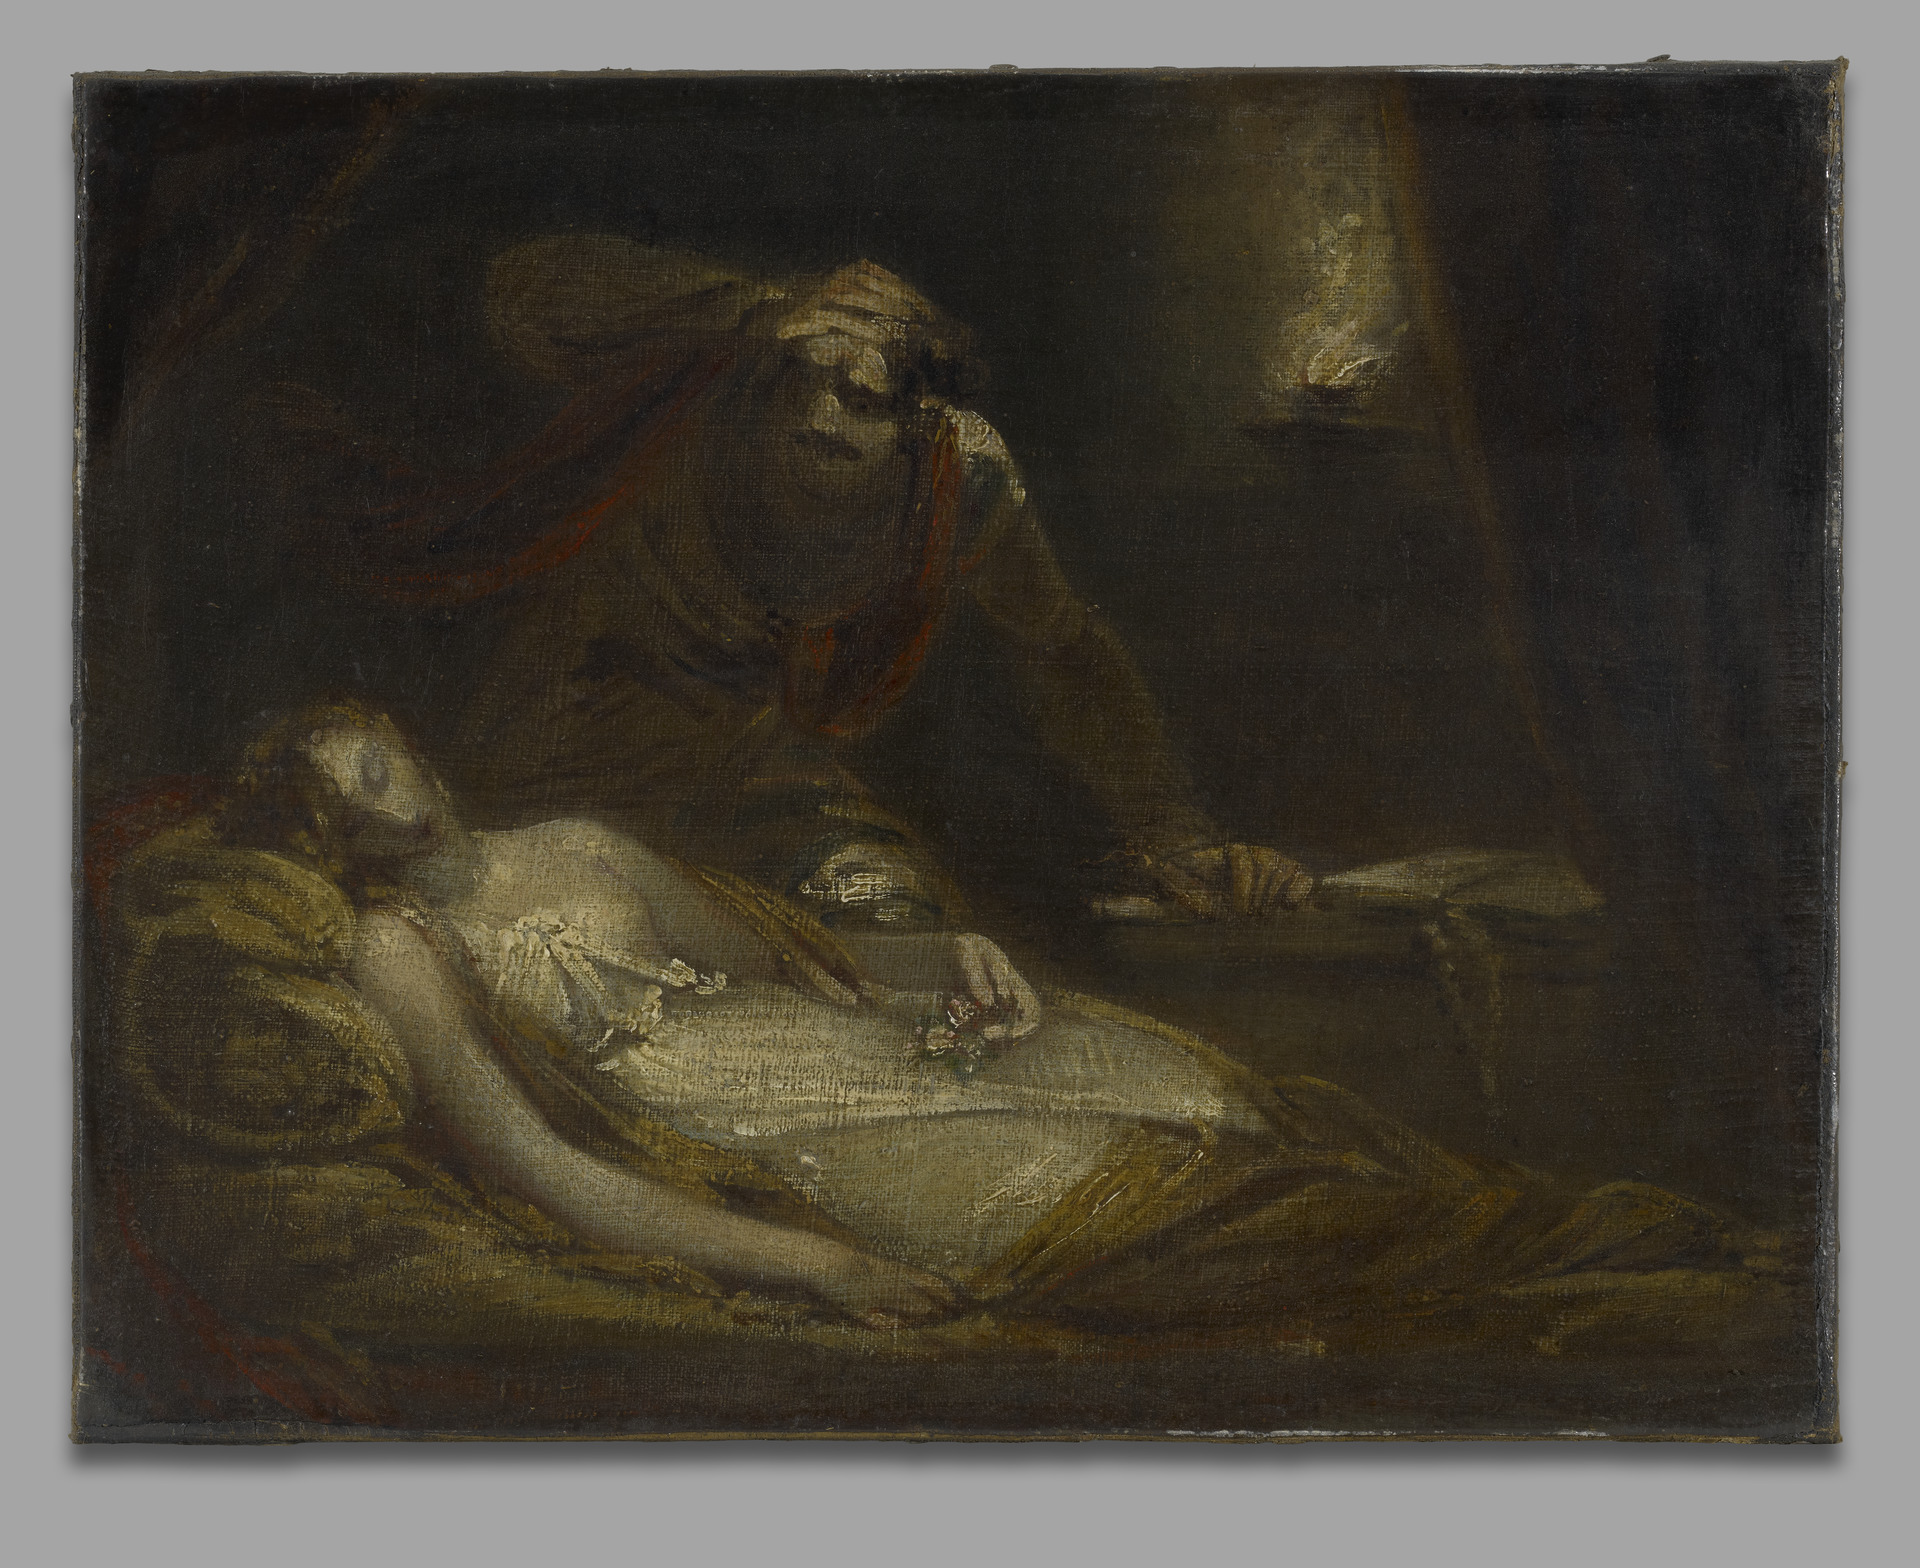 https://commons.wikimedia.org/wiki/File:Theodor_von_Holst_-_Othello_and_Desdemona_-_1986.124.5_-_Yale_University_Art_Gallery.jpg